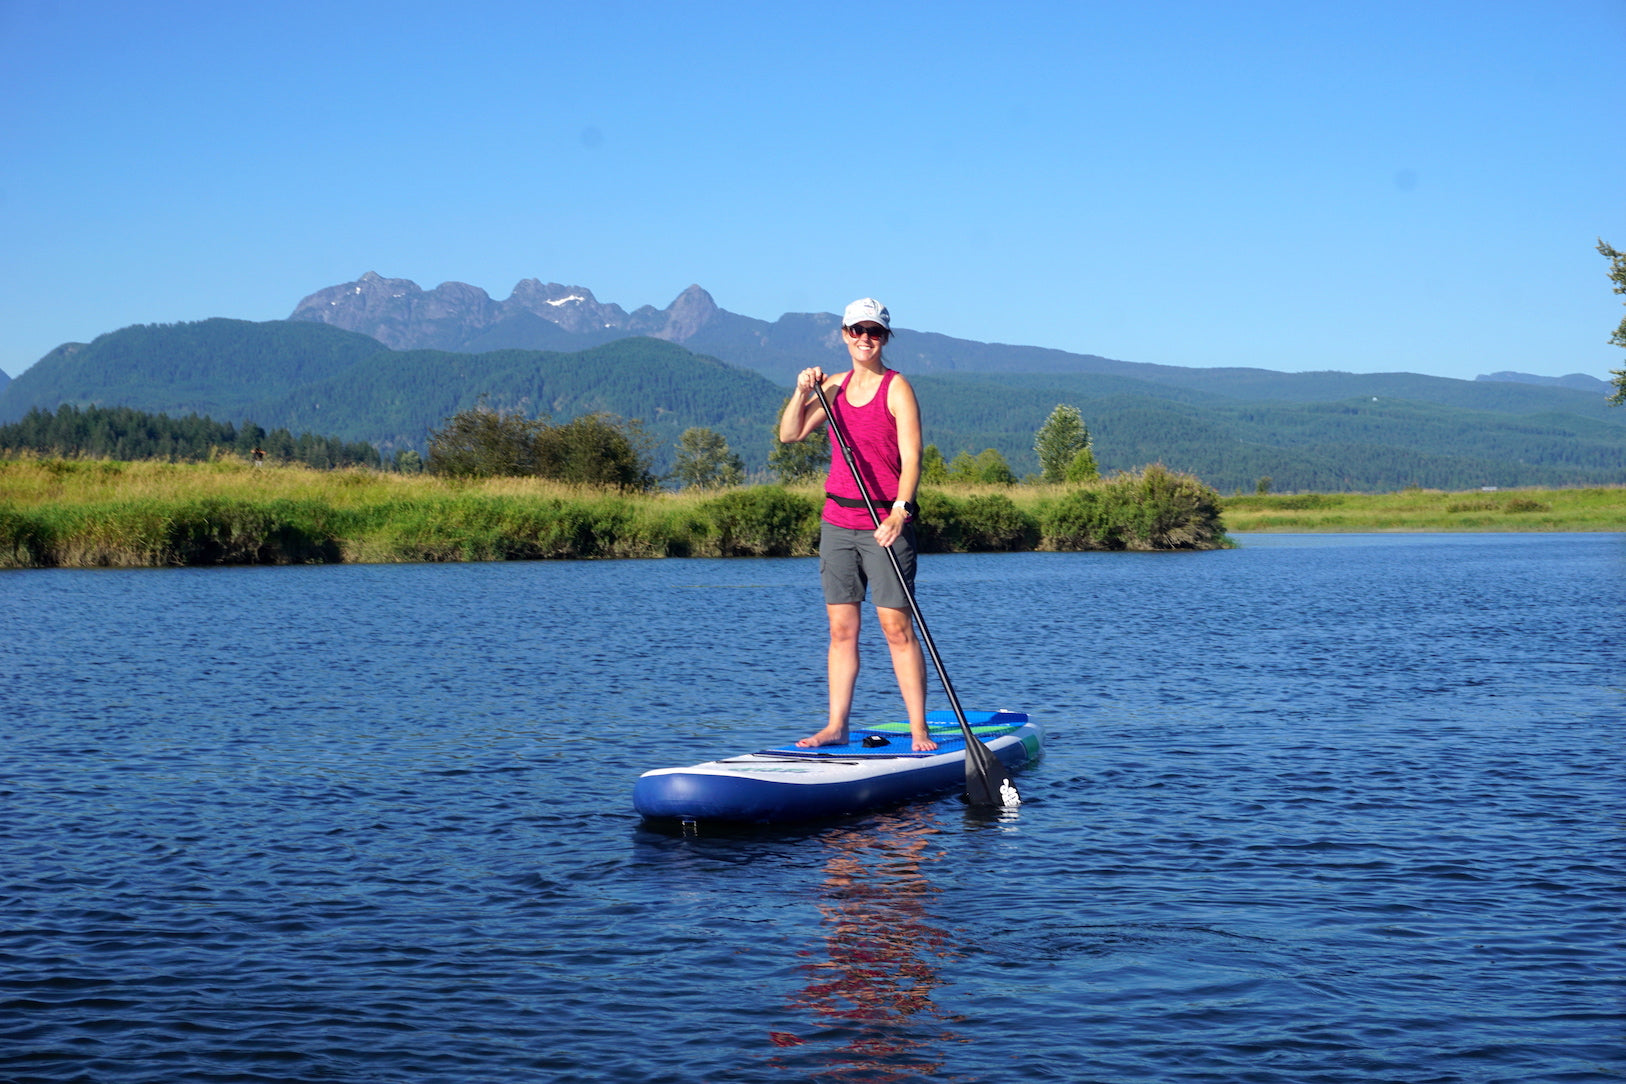 Hero SUP paddle boarding for wellness